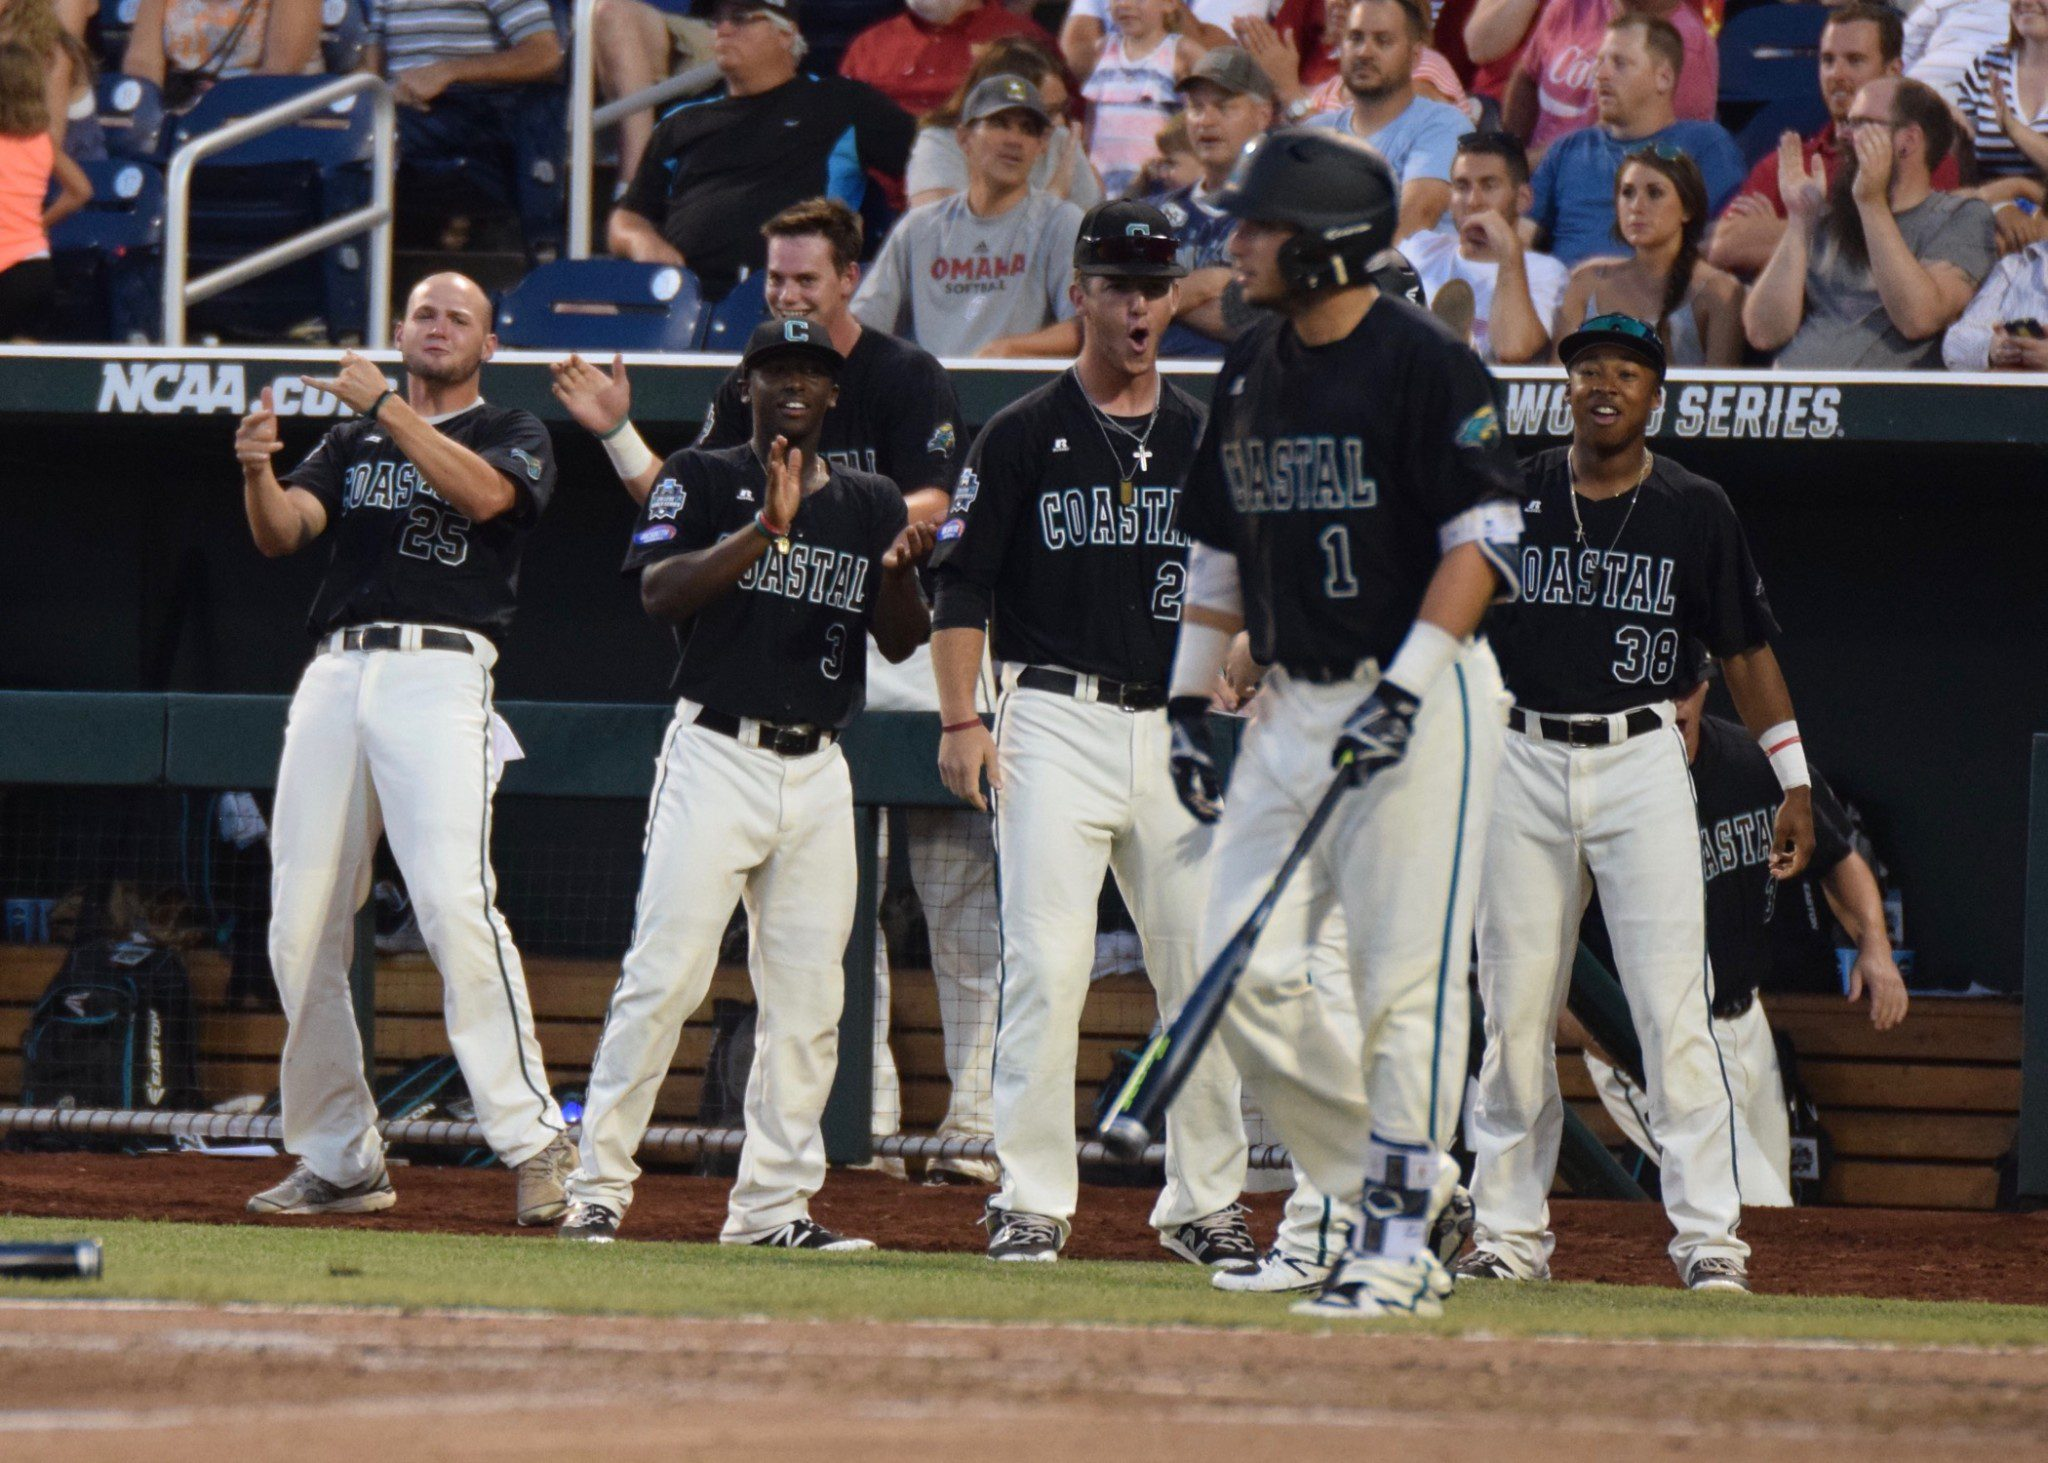 Coastal Carolina players celebrate during a seventh-inning rally Friday against TCU (Aaron Fitt)